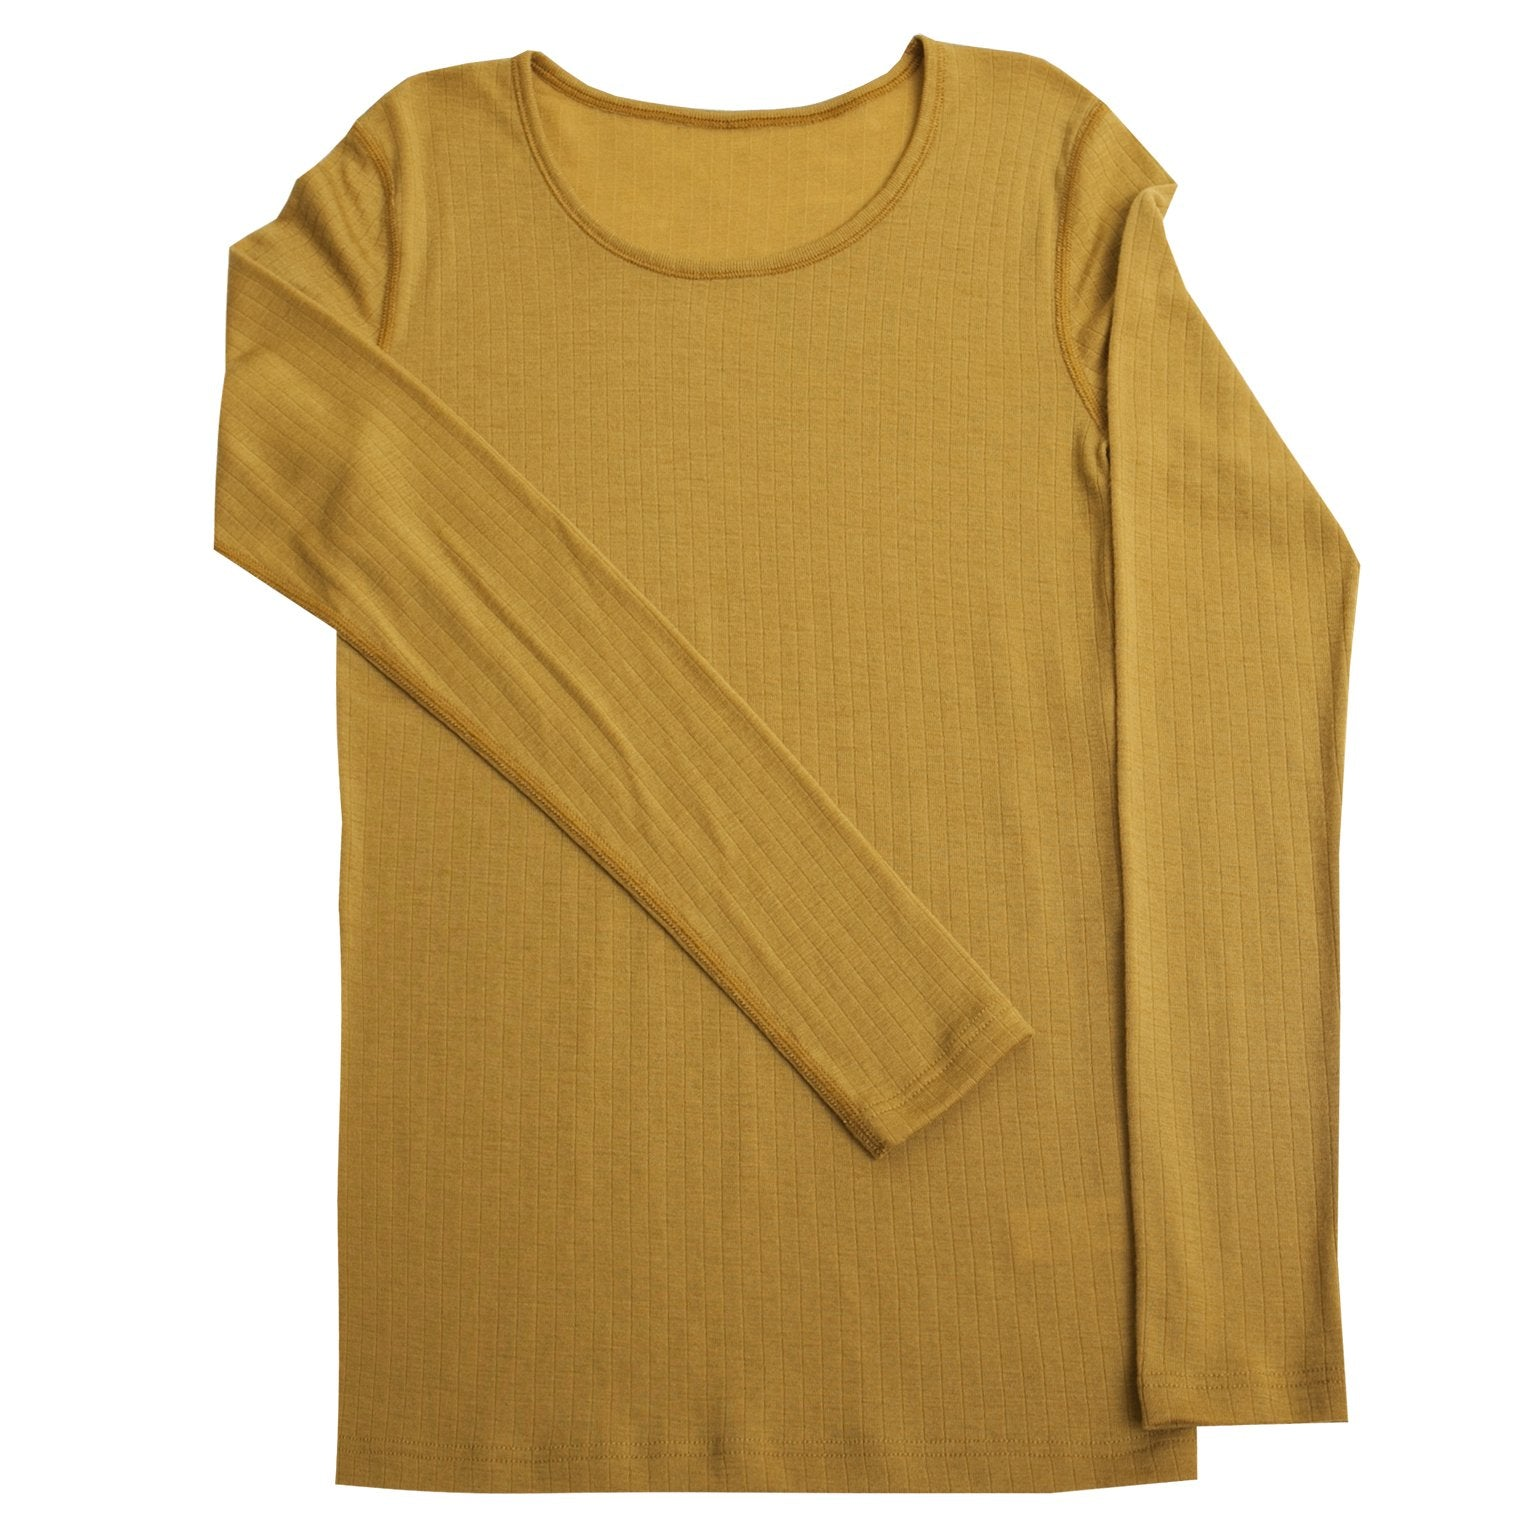 Bluza femei Joha lână merinos - Basic Curry Yellow-Joha-HipHip.ro